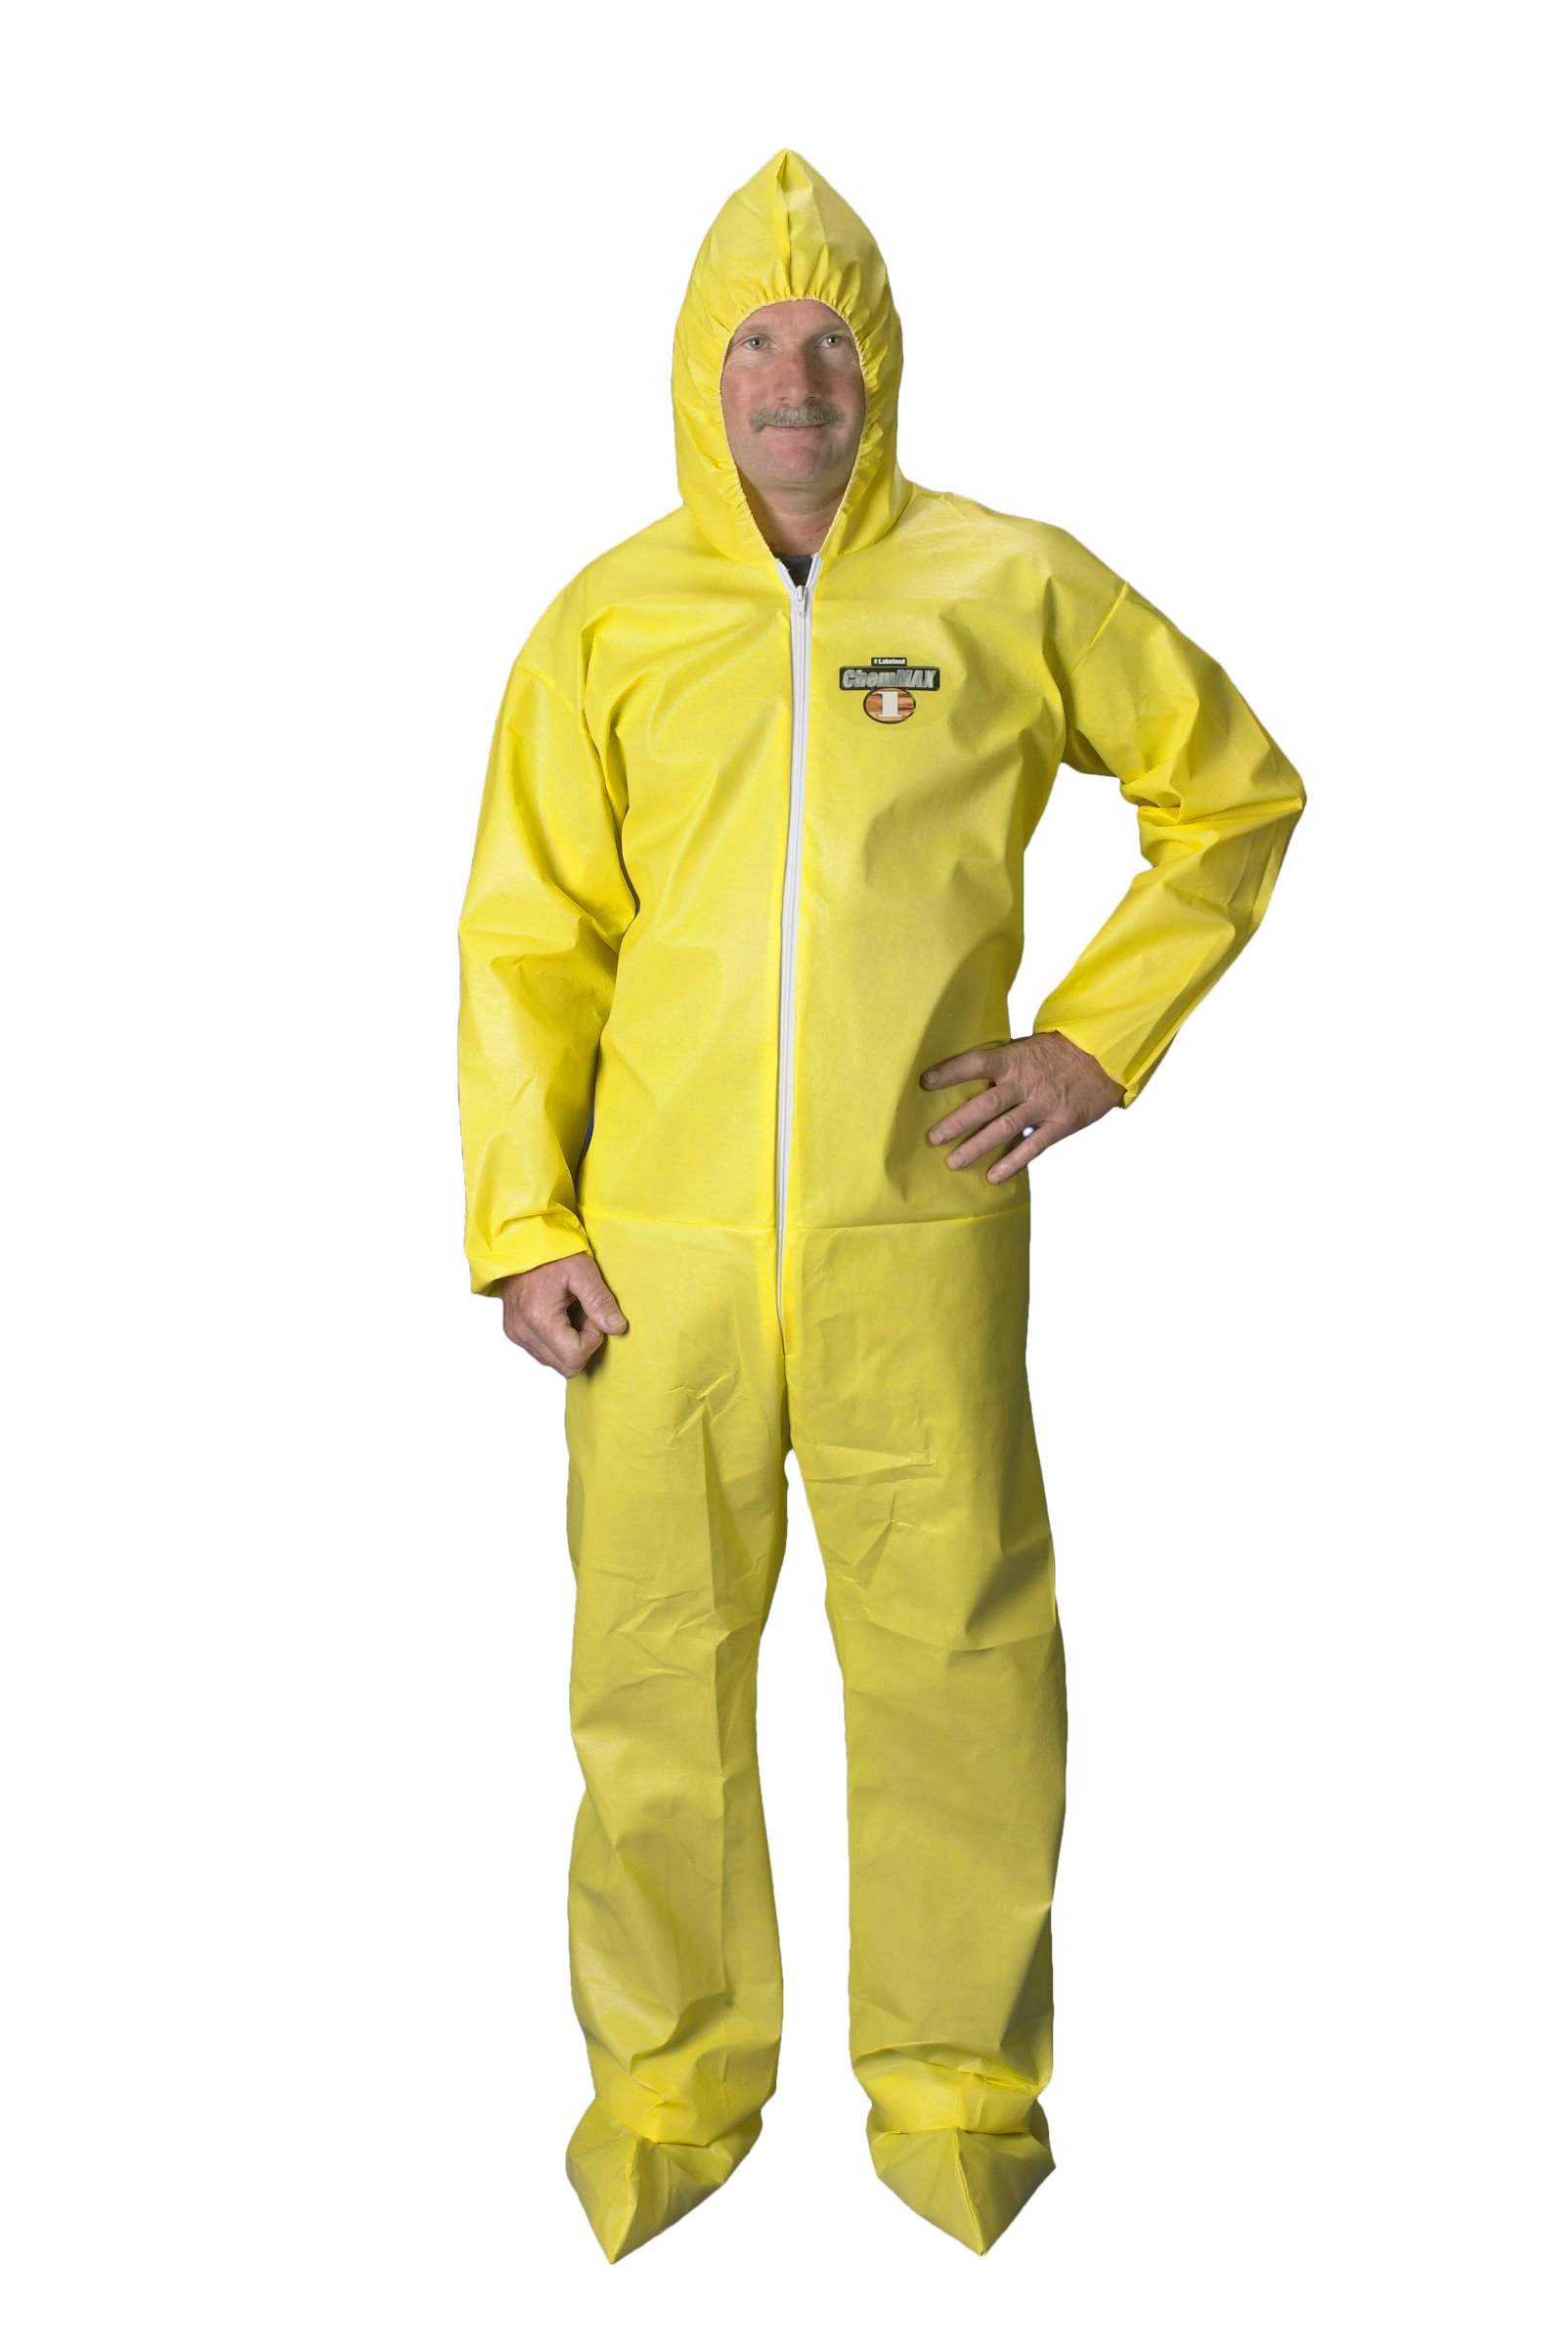 Lakeland ChemMax 1 Polyethylene/Polypropylene Serged Seam Disposable Coverall with Hood and Boots, Elastic Cuff, 2X-Large, Yellow (Case of 25) by Lakeland Industries Inc (Image #1)